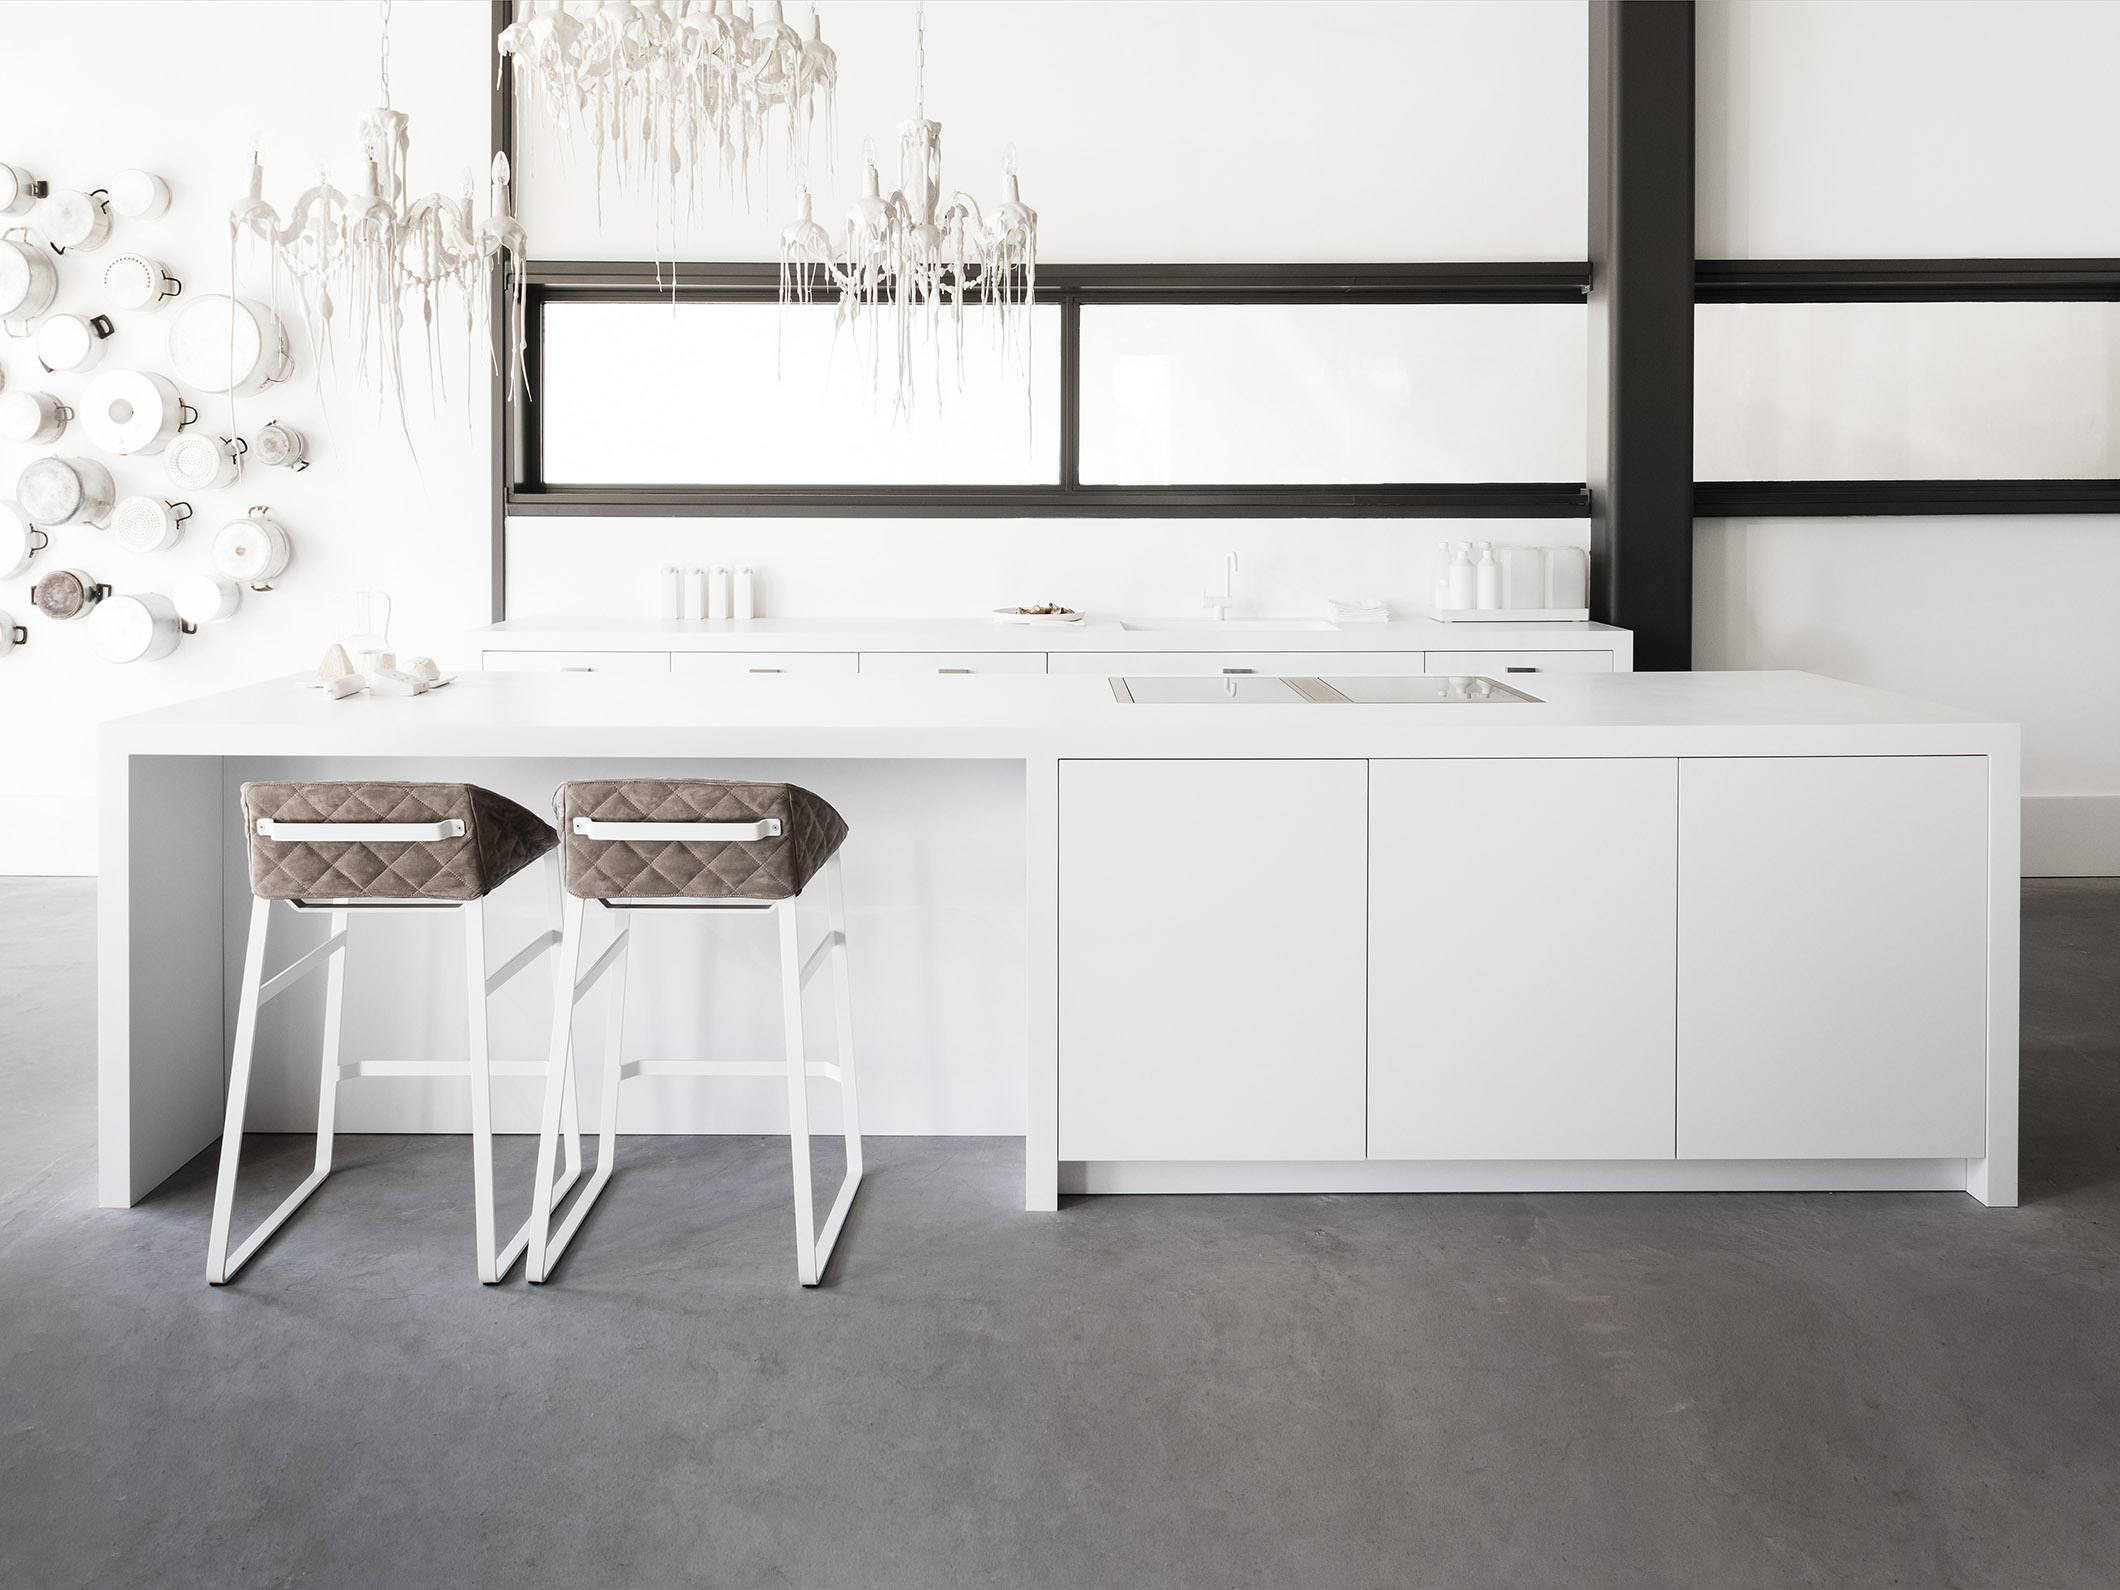 ELEMENT kitchen and tableware by Serax